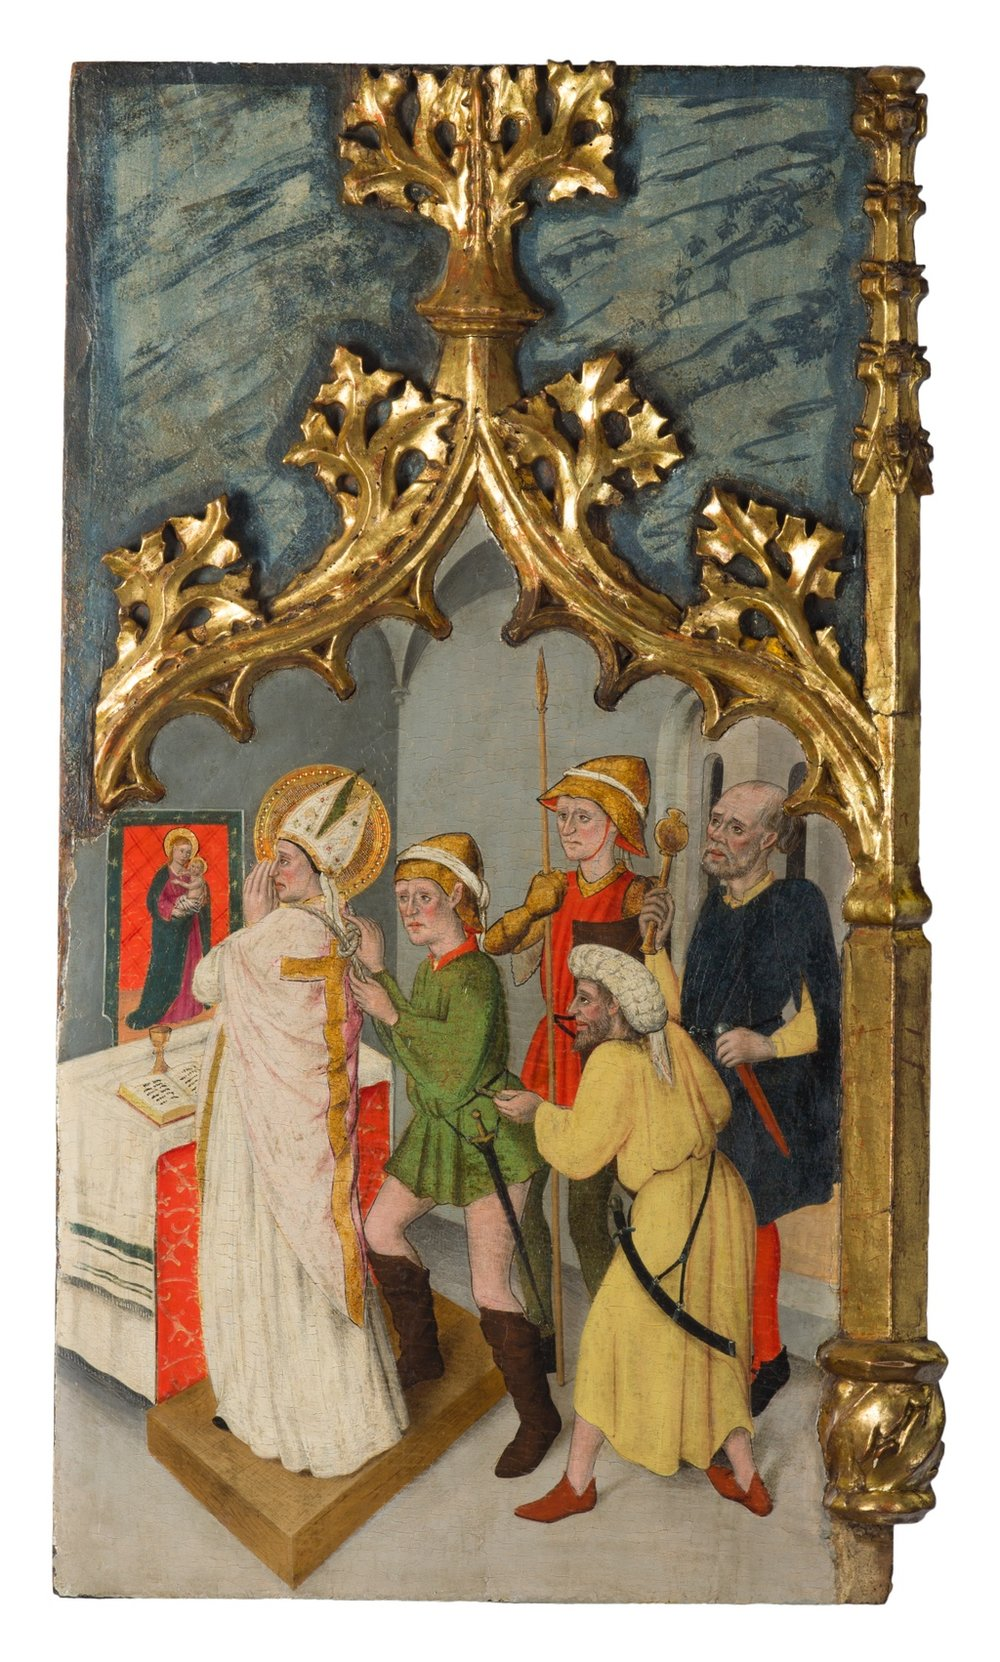 261_Joan Figuera_The retable of The Virgin. Saint Peter Martyr. and Saint Mark_Egg tempera on panel_261 x 249 cm. 102 ¾ x 98 in._thumbnail-1.jpg